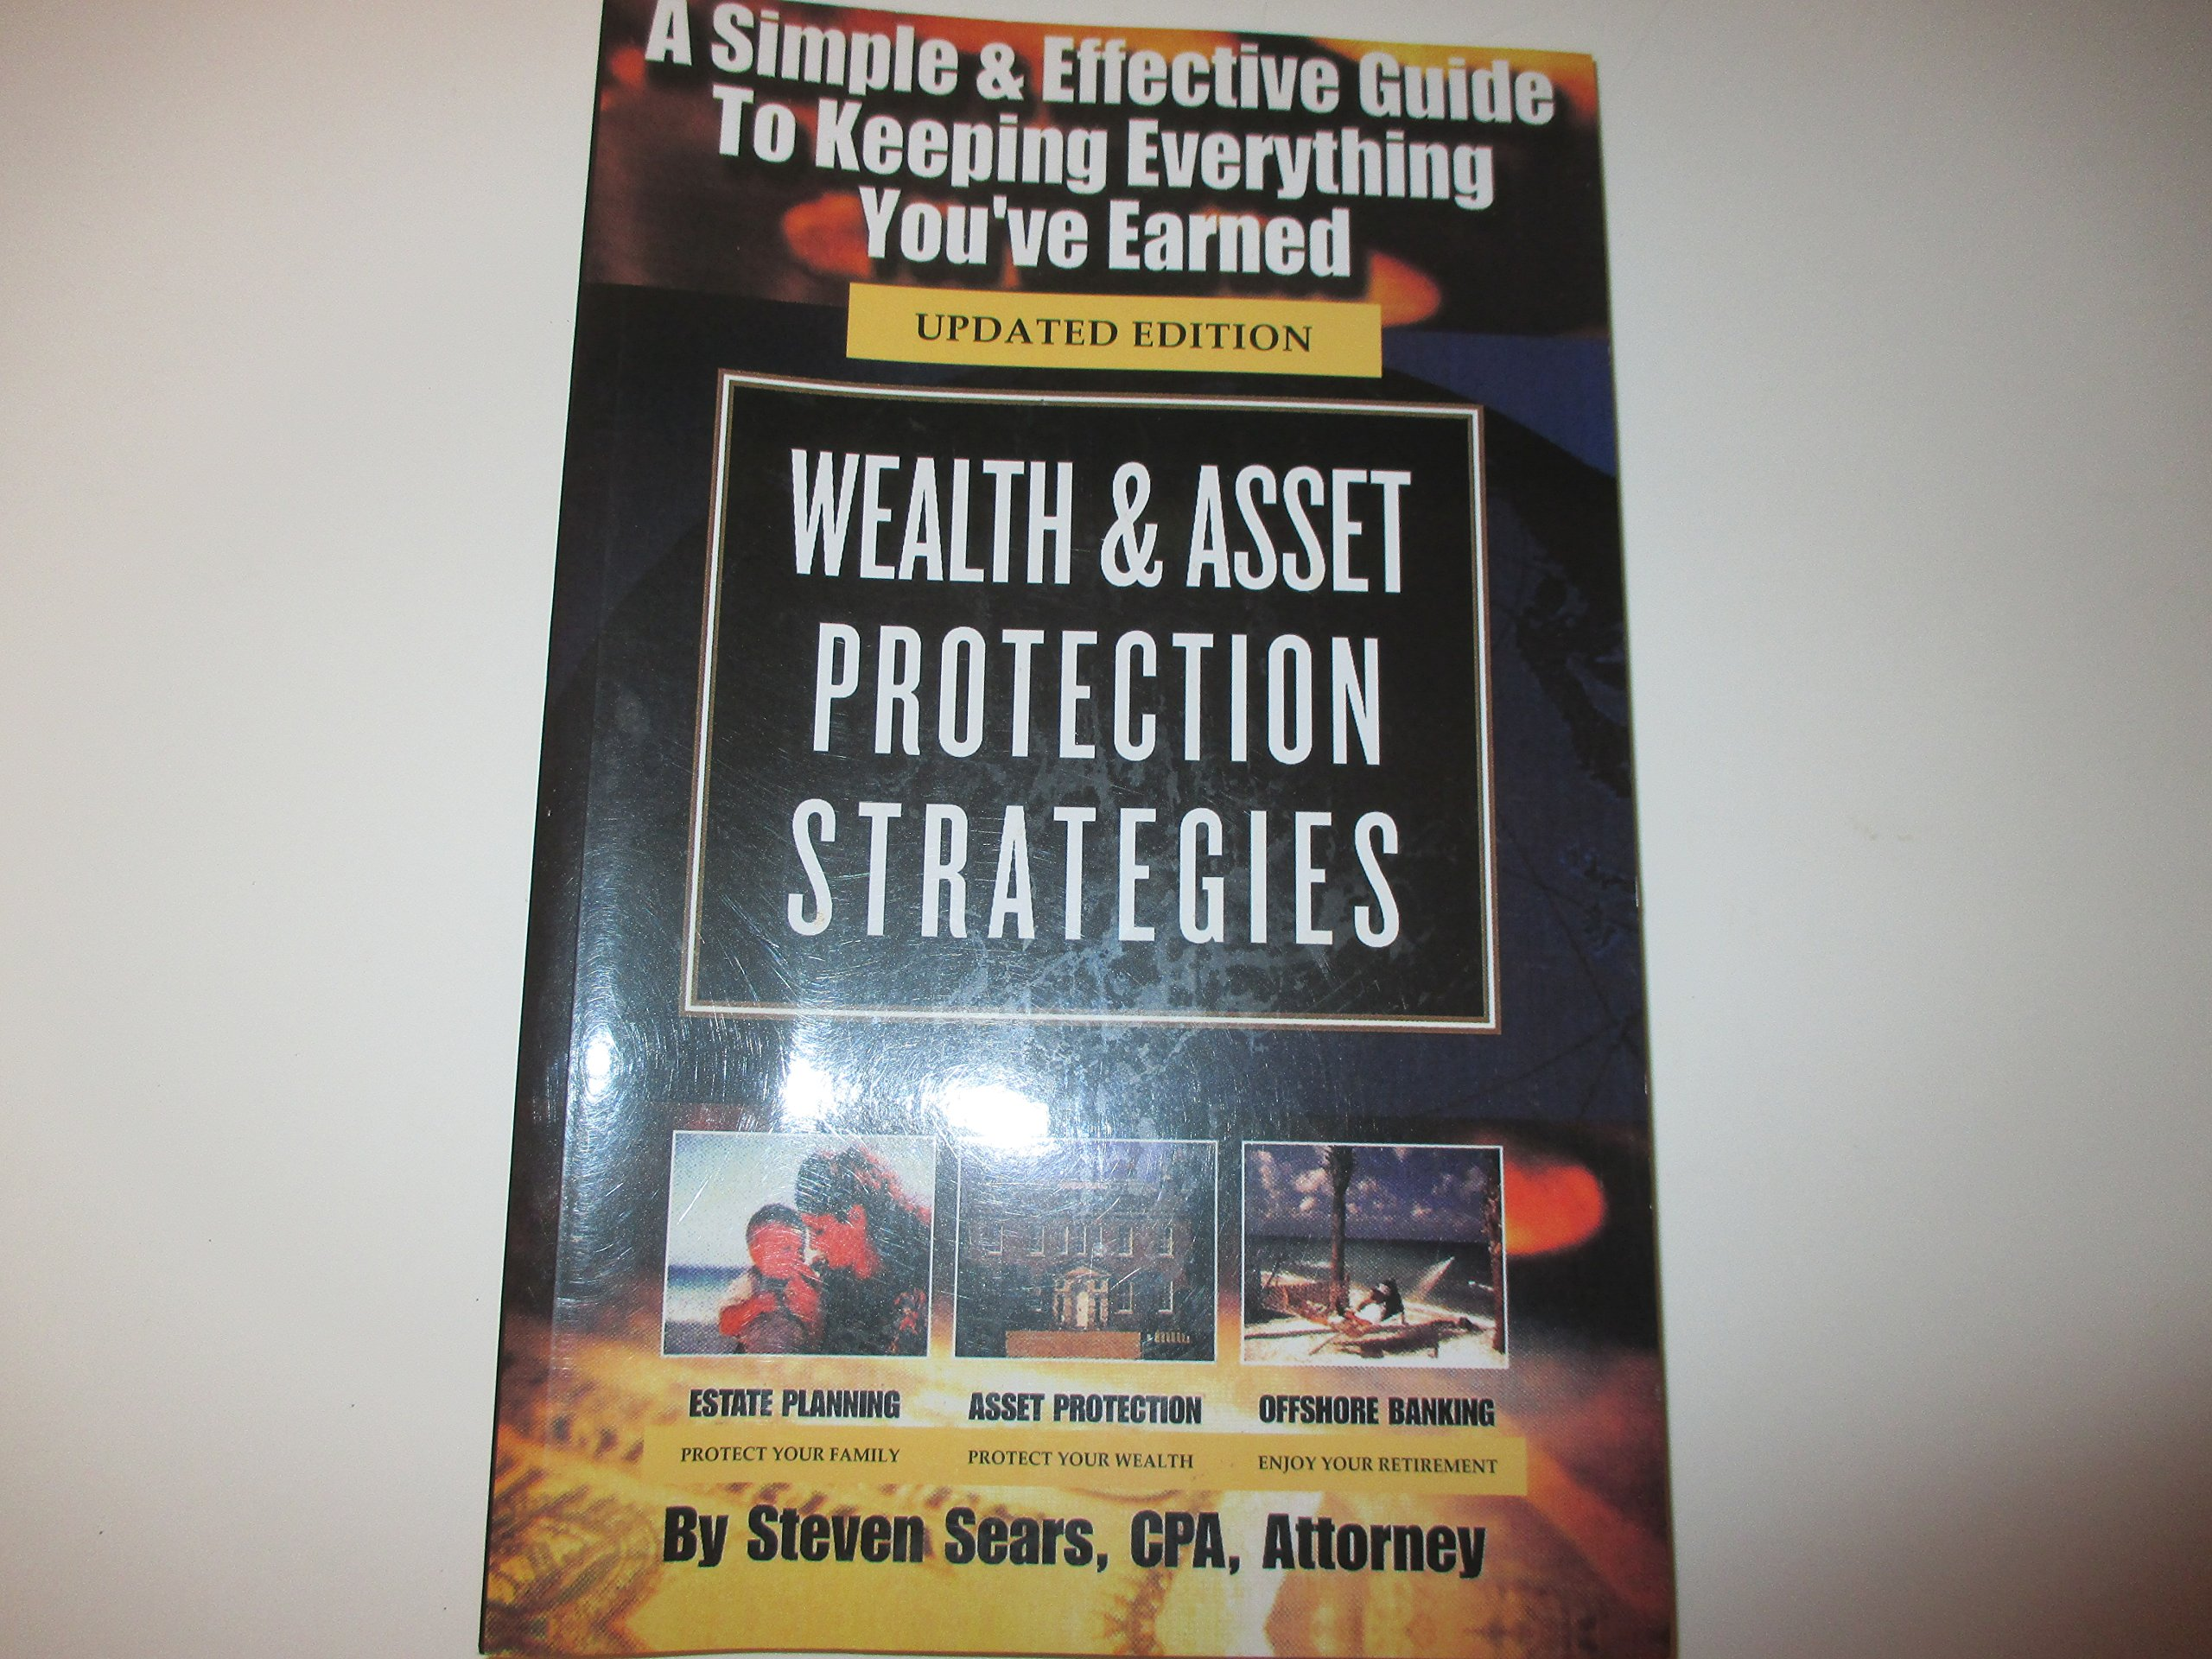 Wealth and Asset Protection Strategies: A Simple and Effective Guide to Keeping Everything You've Earned